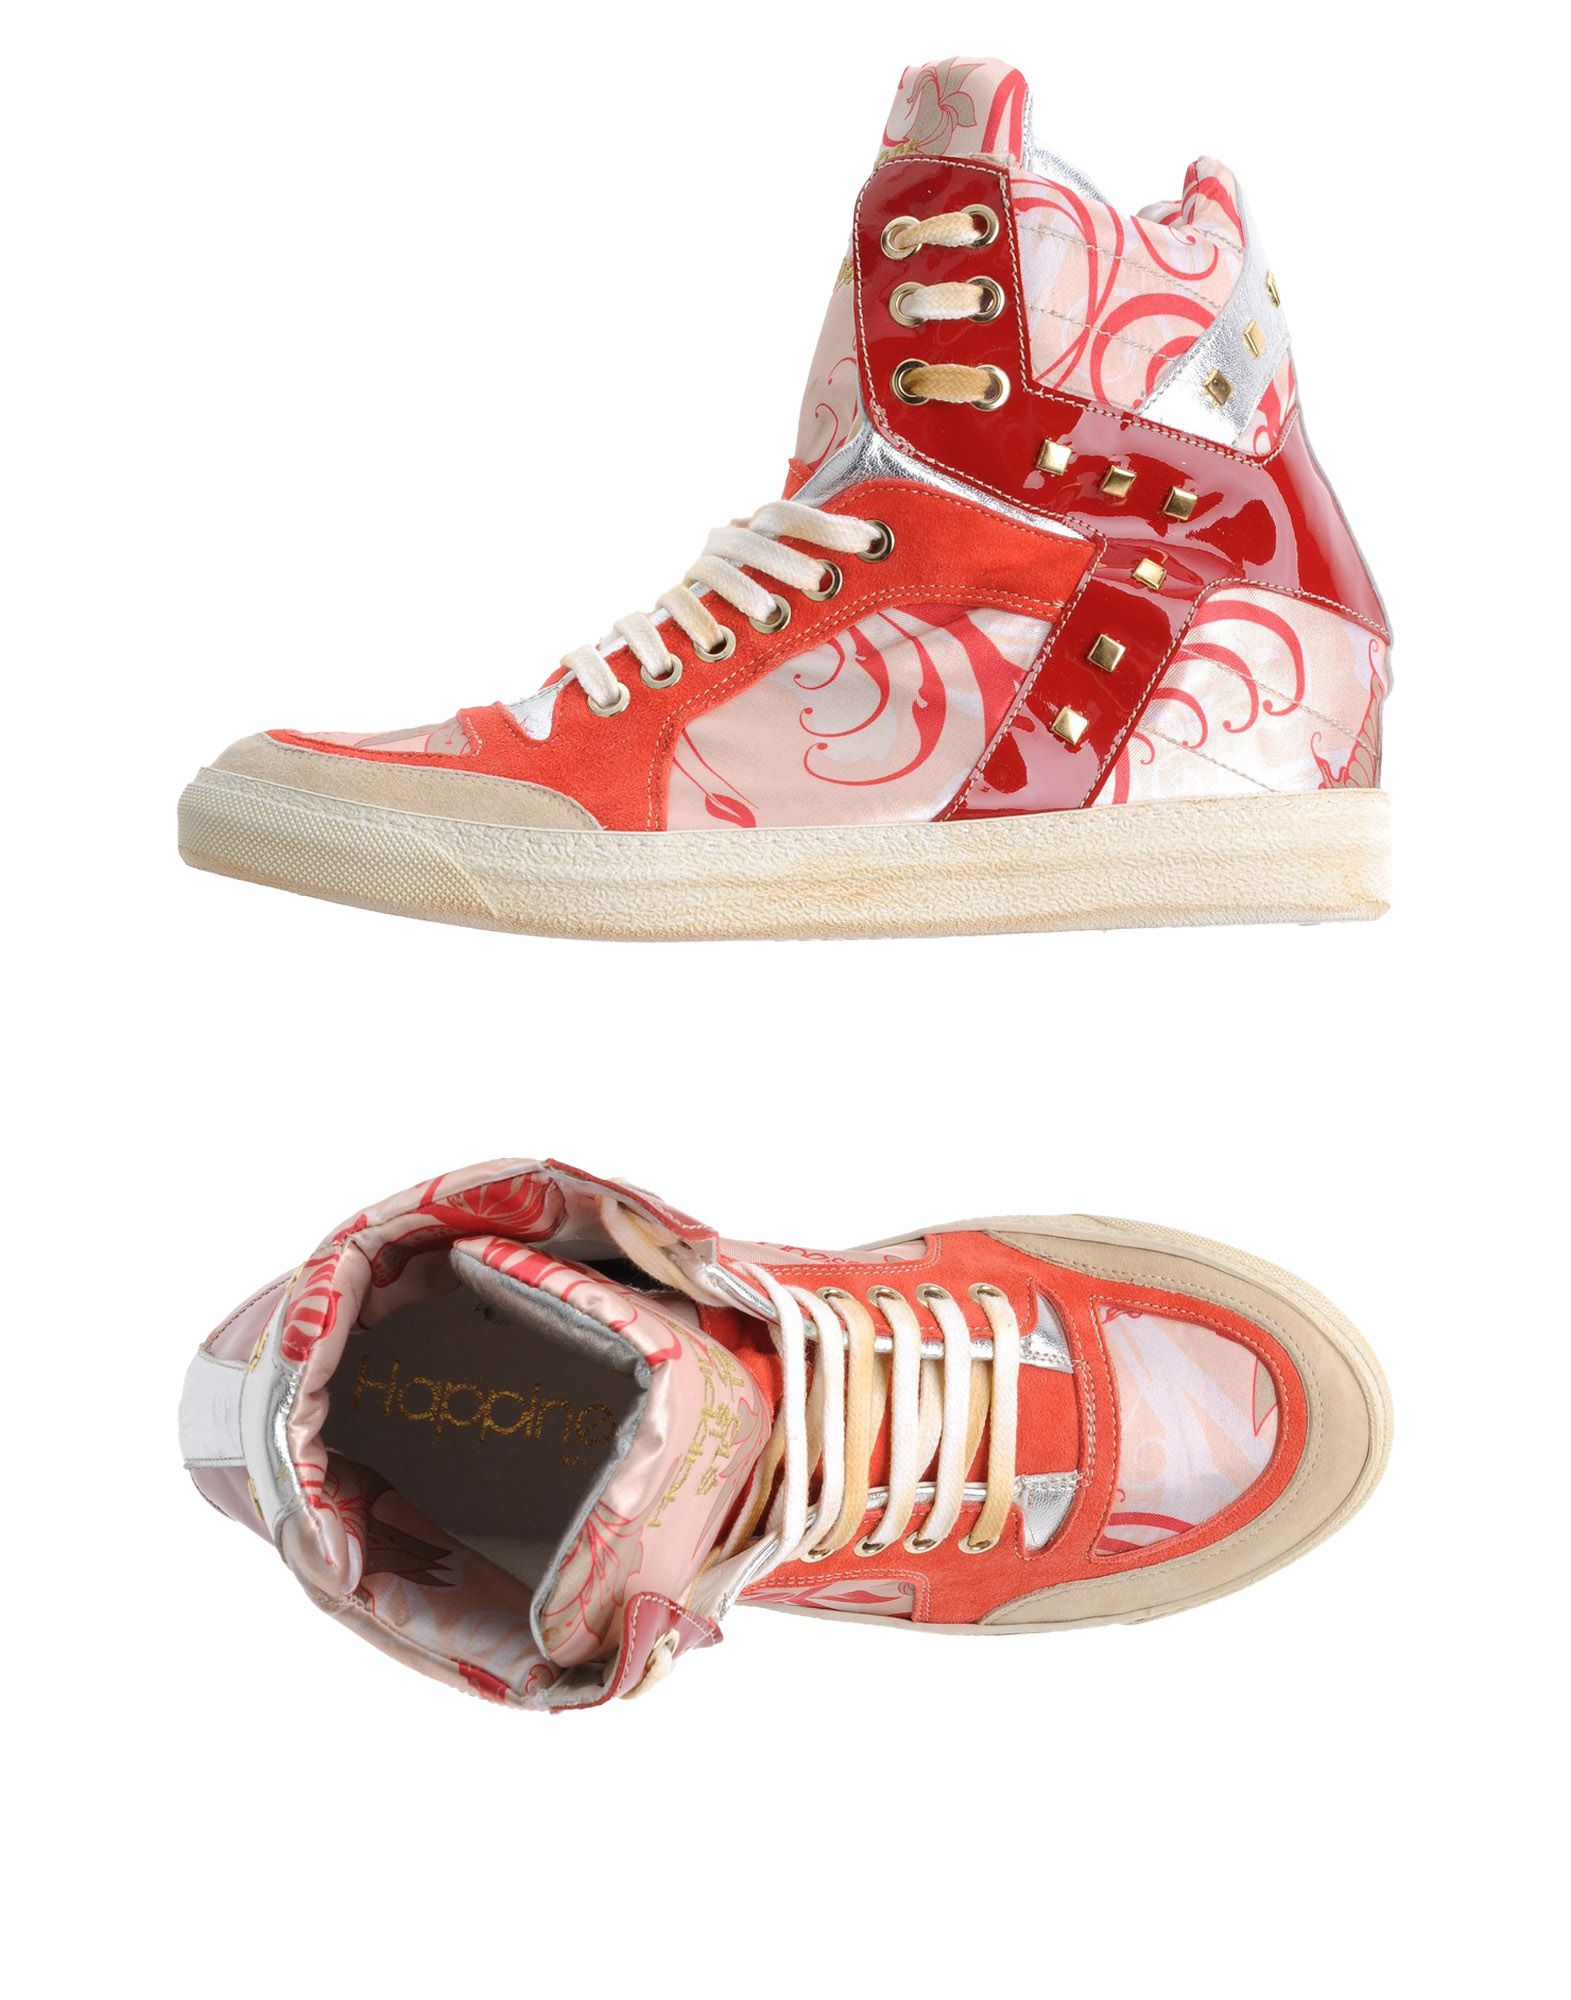 A buon mercato Sneakers Happiness Donna - 11327798NT